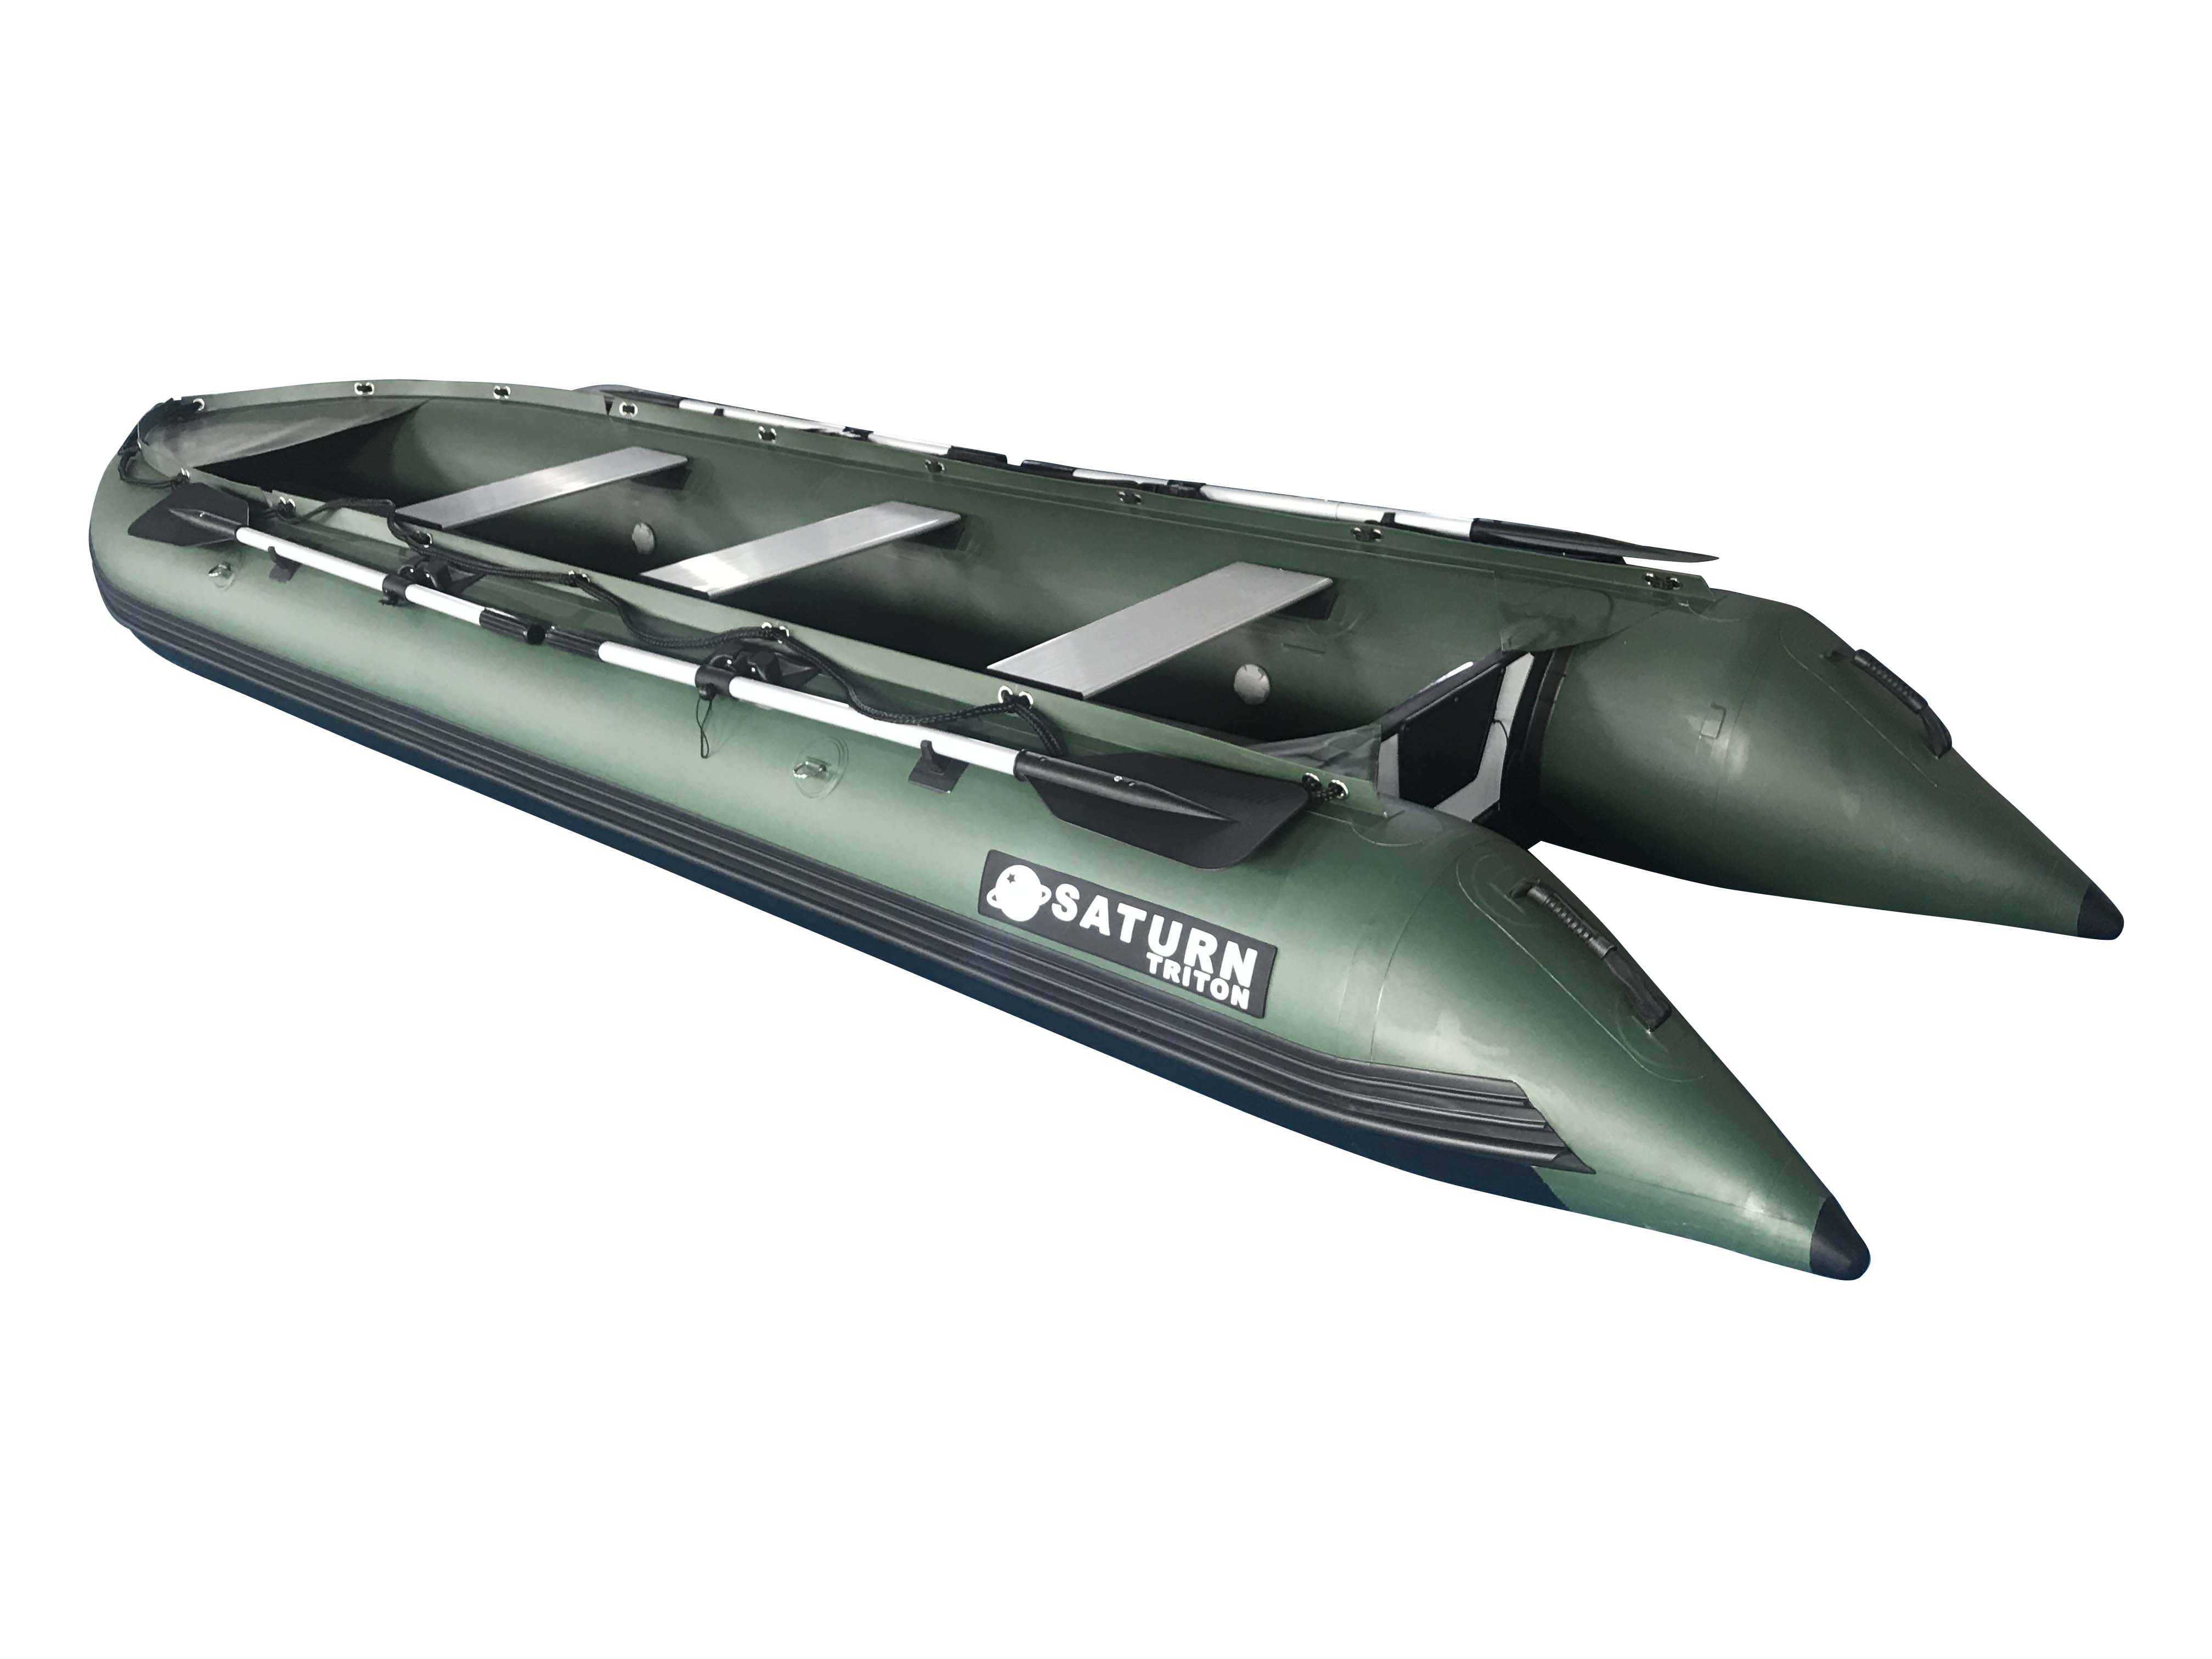 15' Saturn Triton Outfitter Series KaBoat - Green